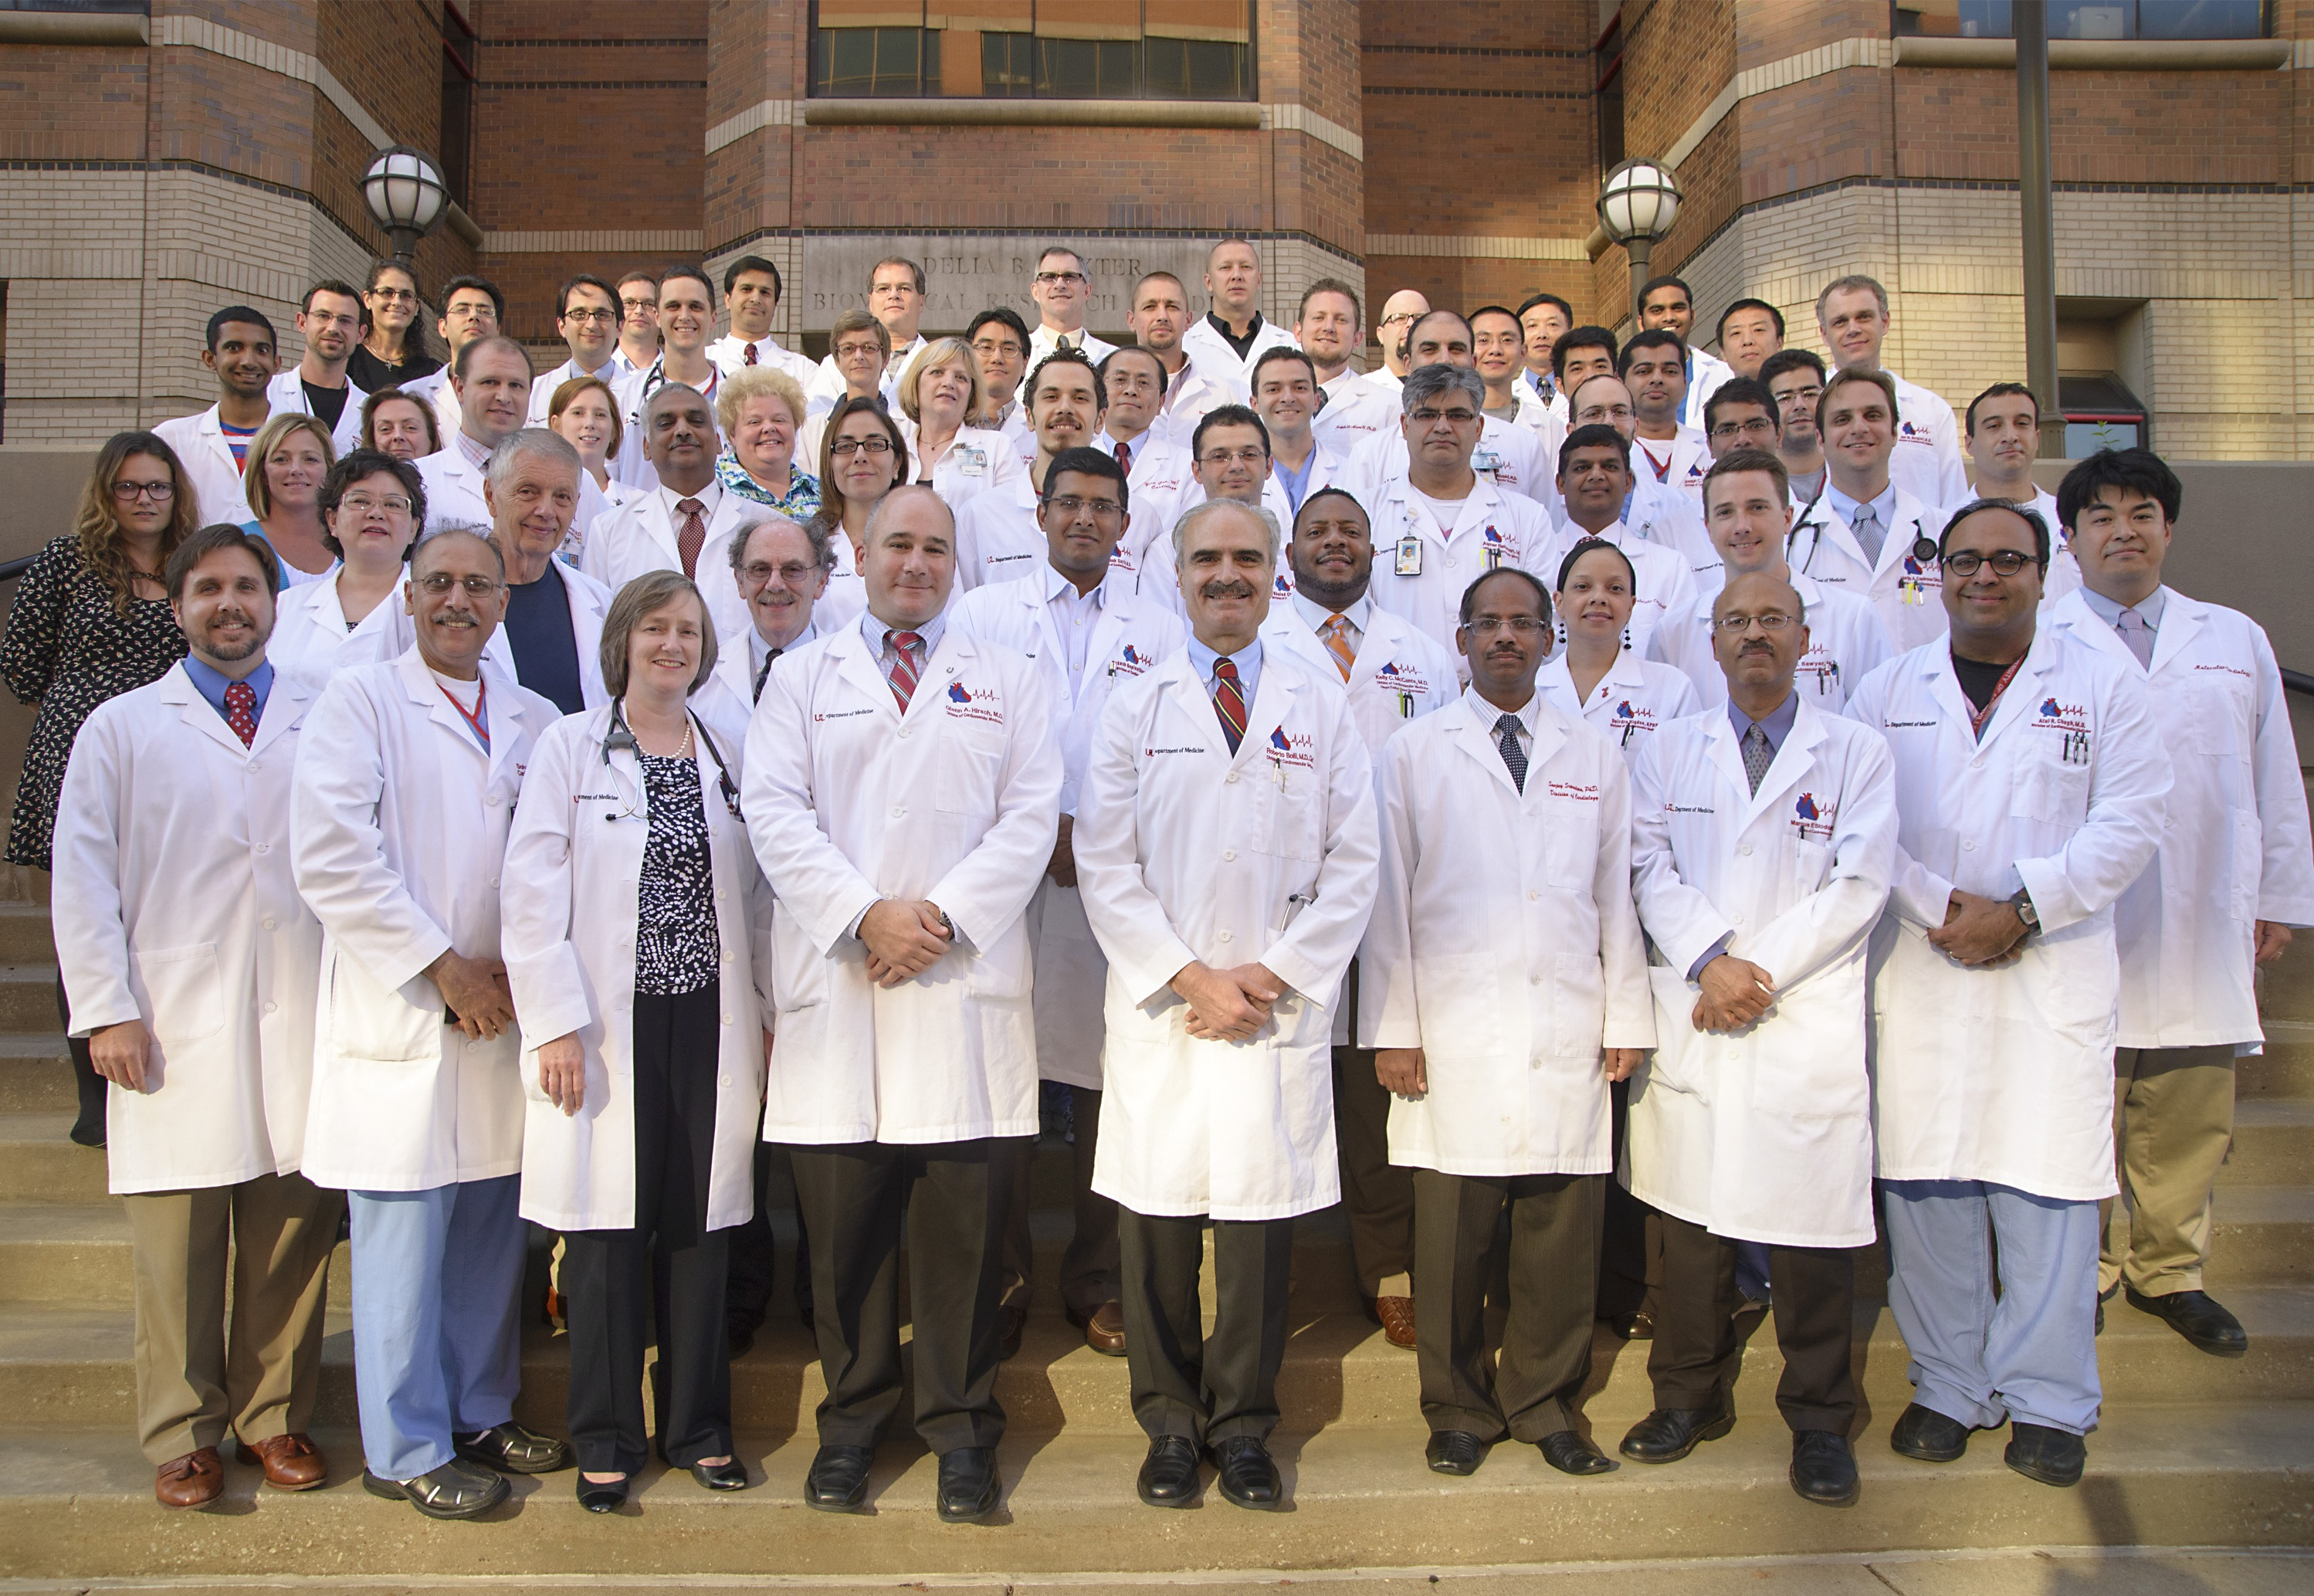 clinical faculty at the Division of Cardiovascular Medicine